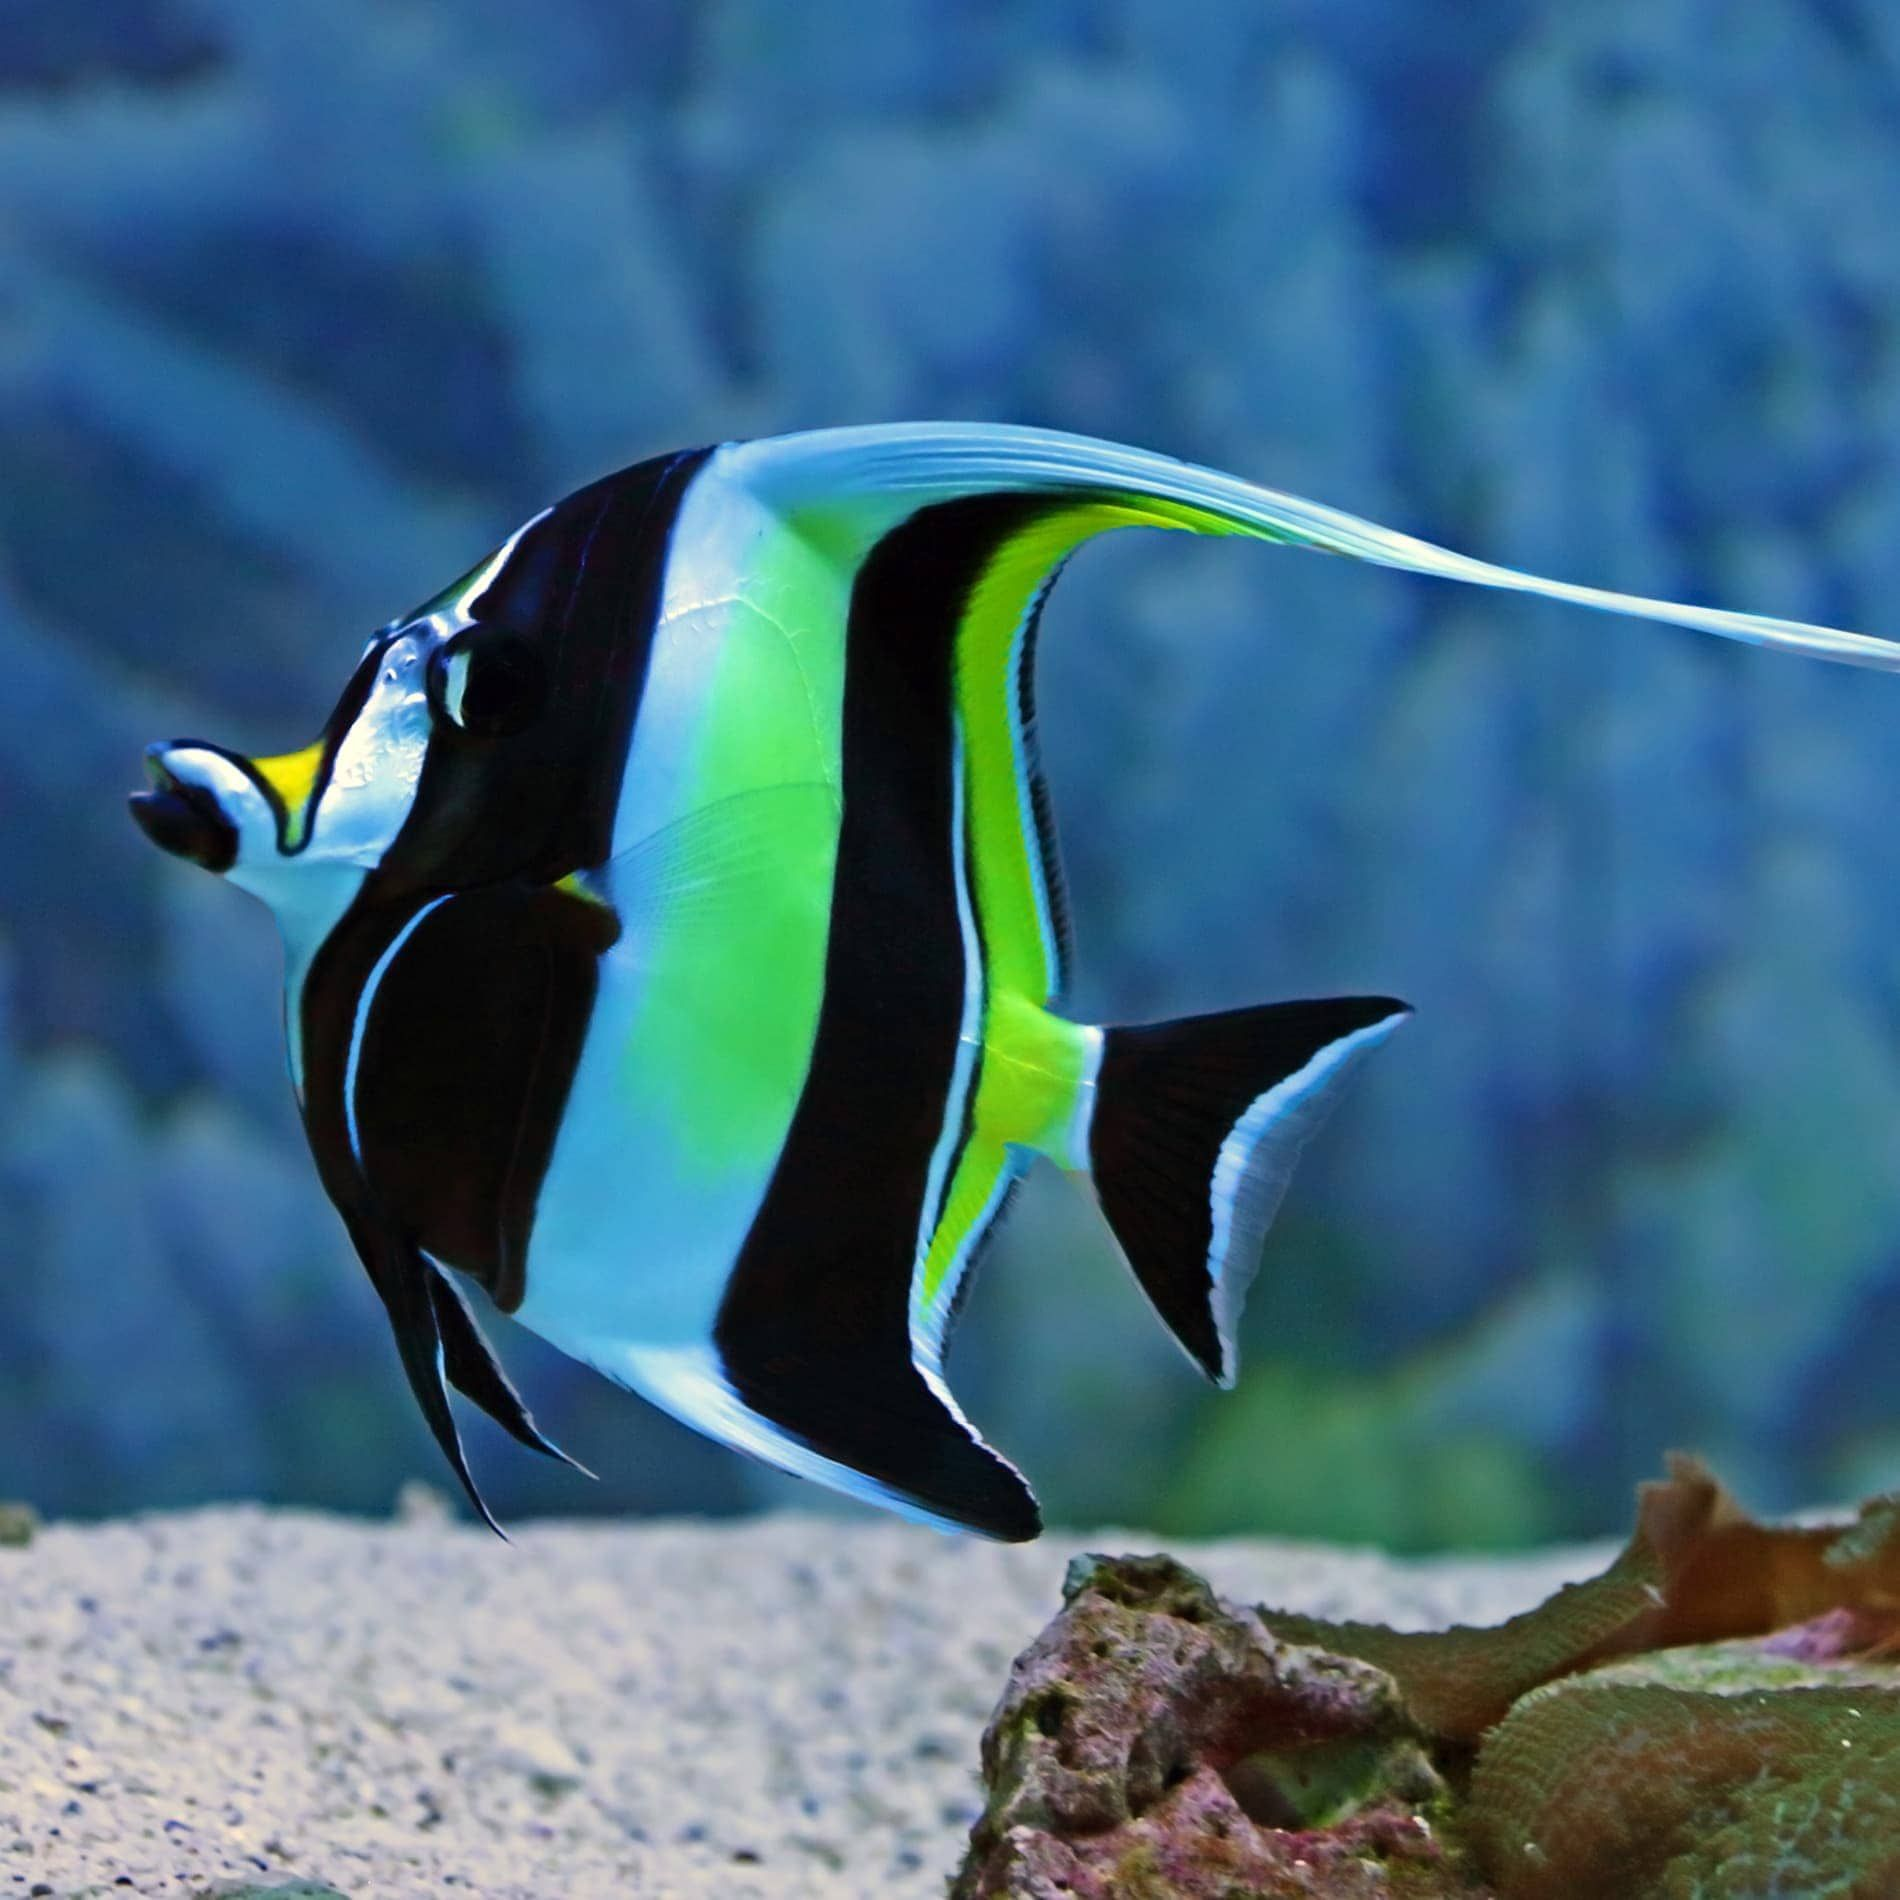 Pin By Arlette Rodriguez On Animals Insects Underwater Animals